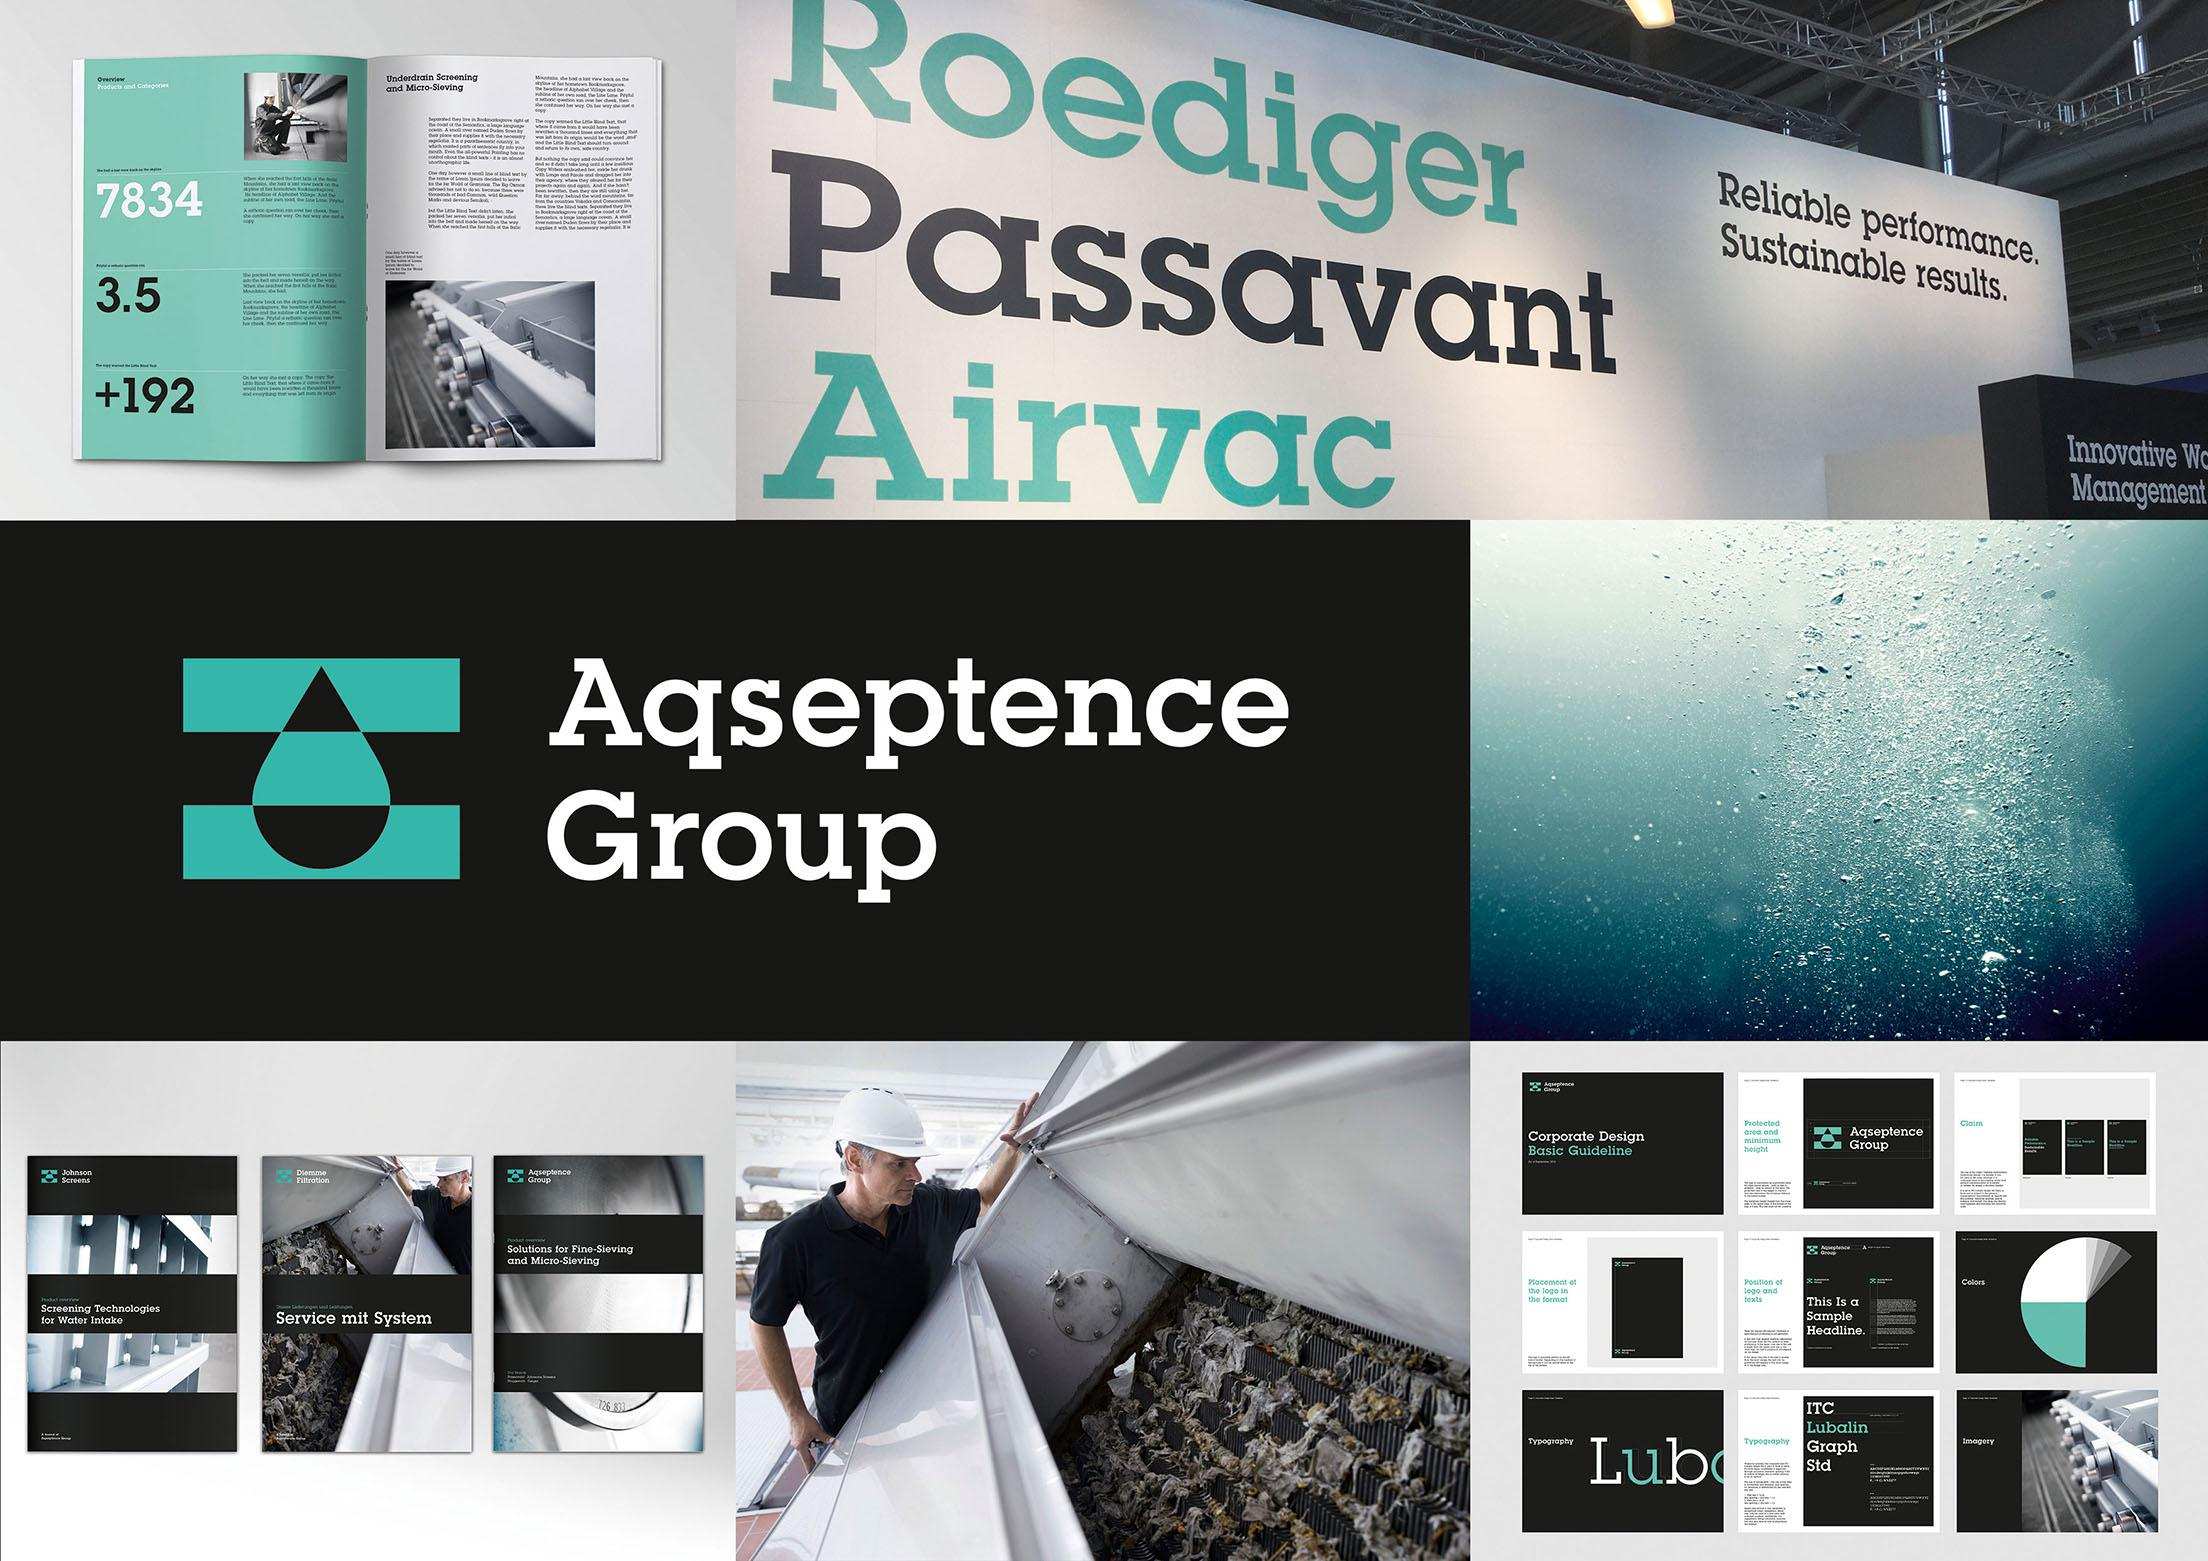 Aqseptence Group